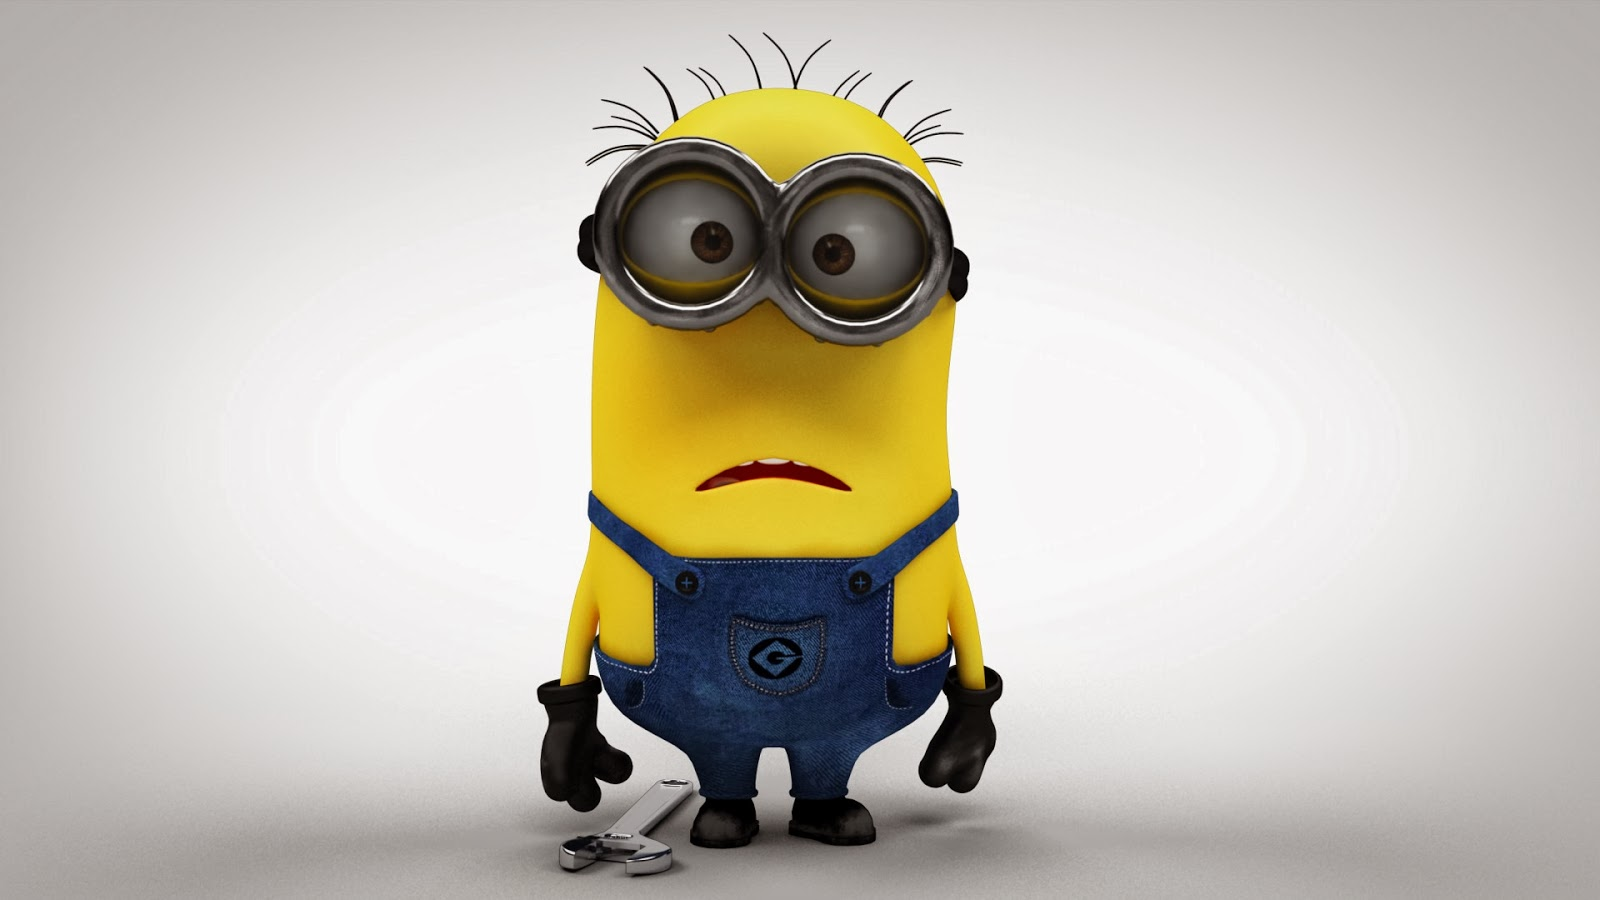 minion wallpapers hd beautiful wallpapers collection 2014